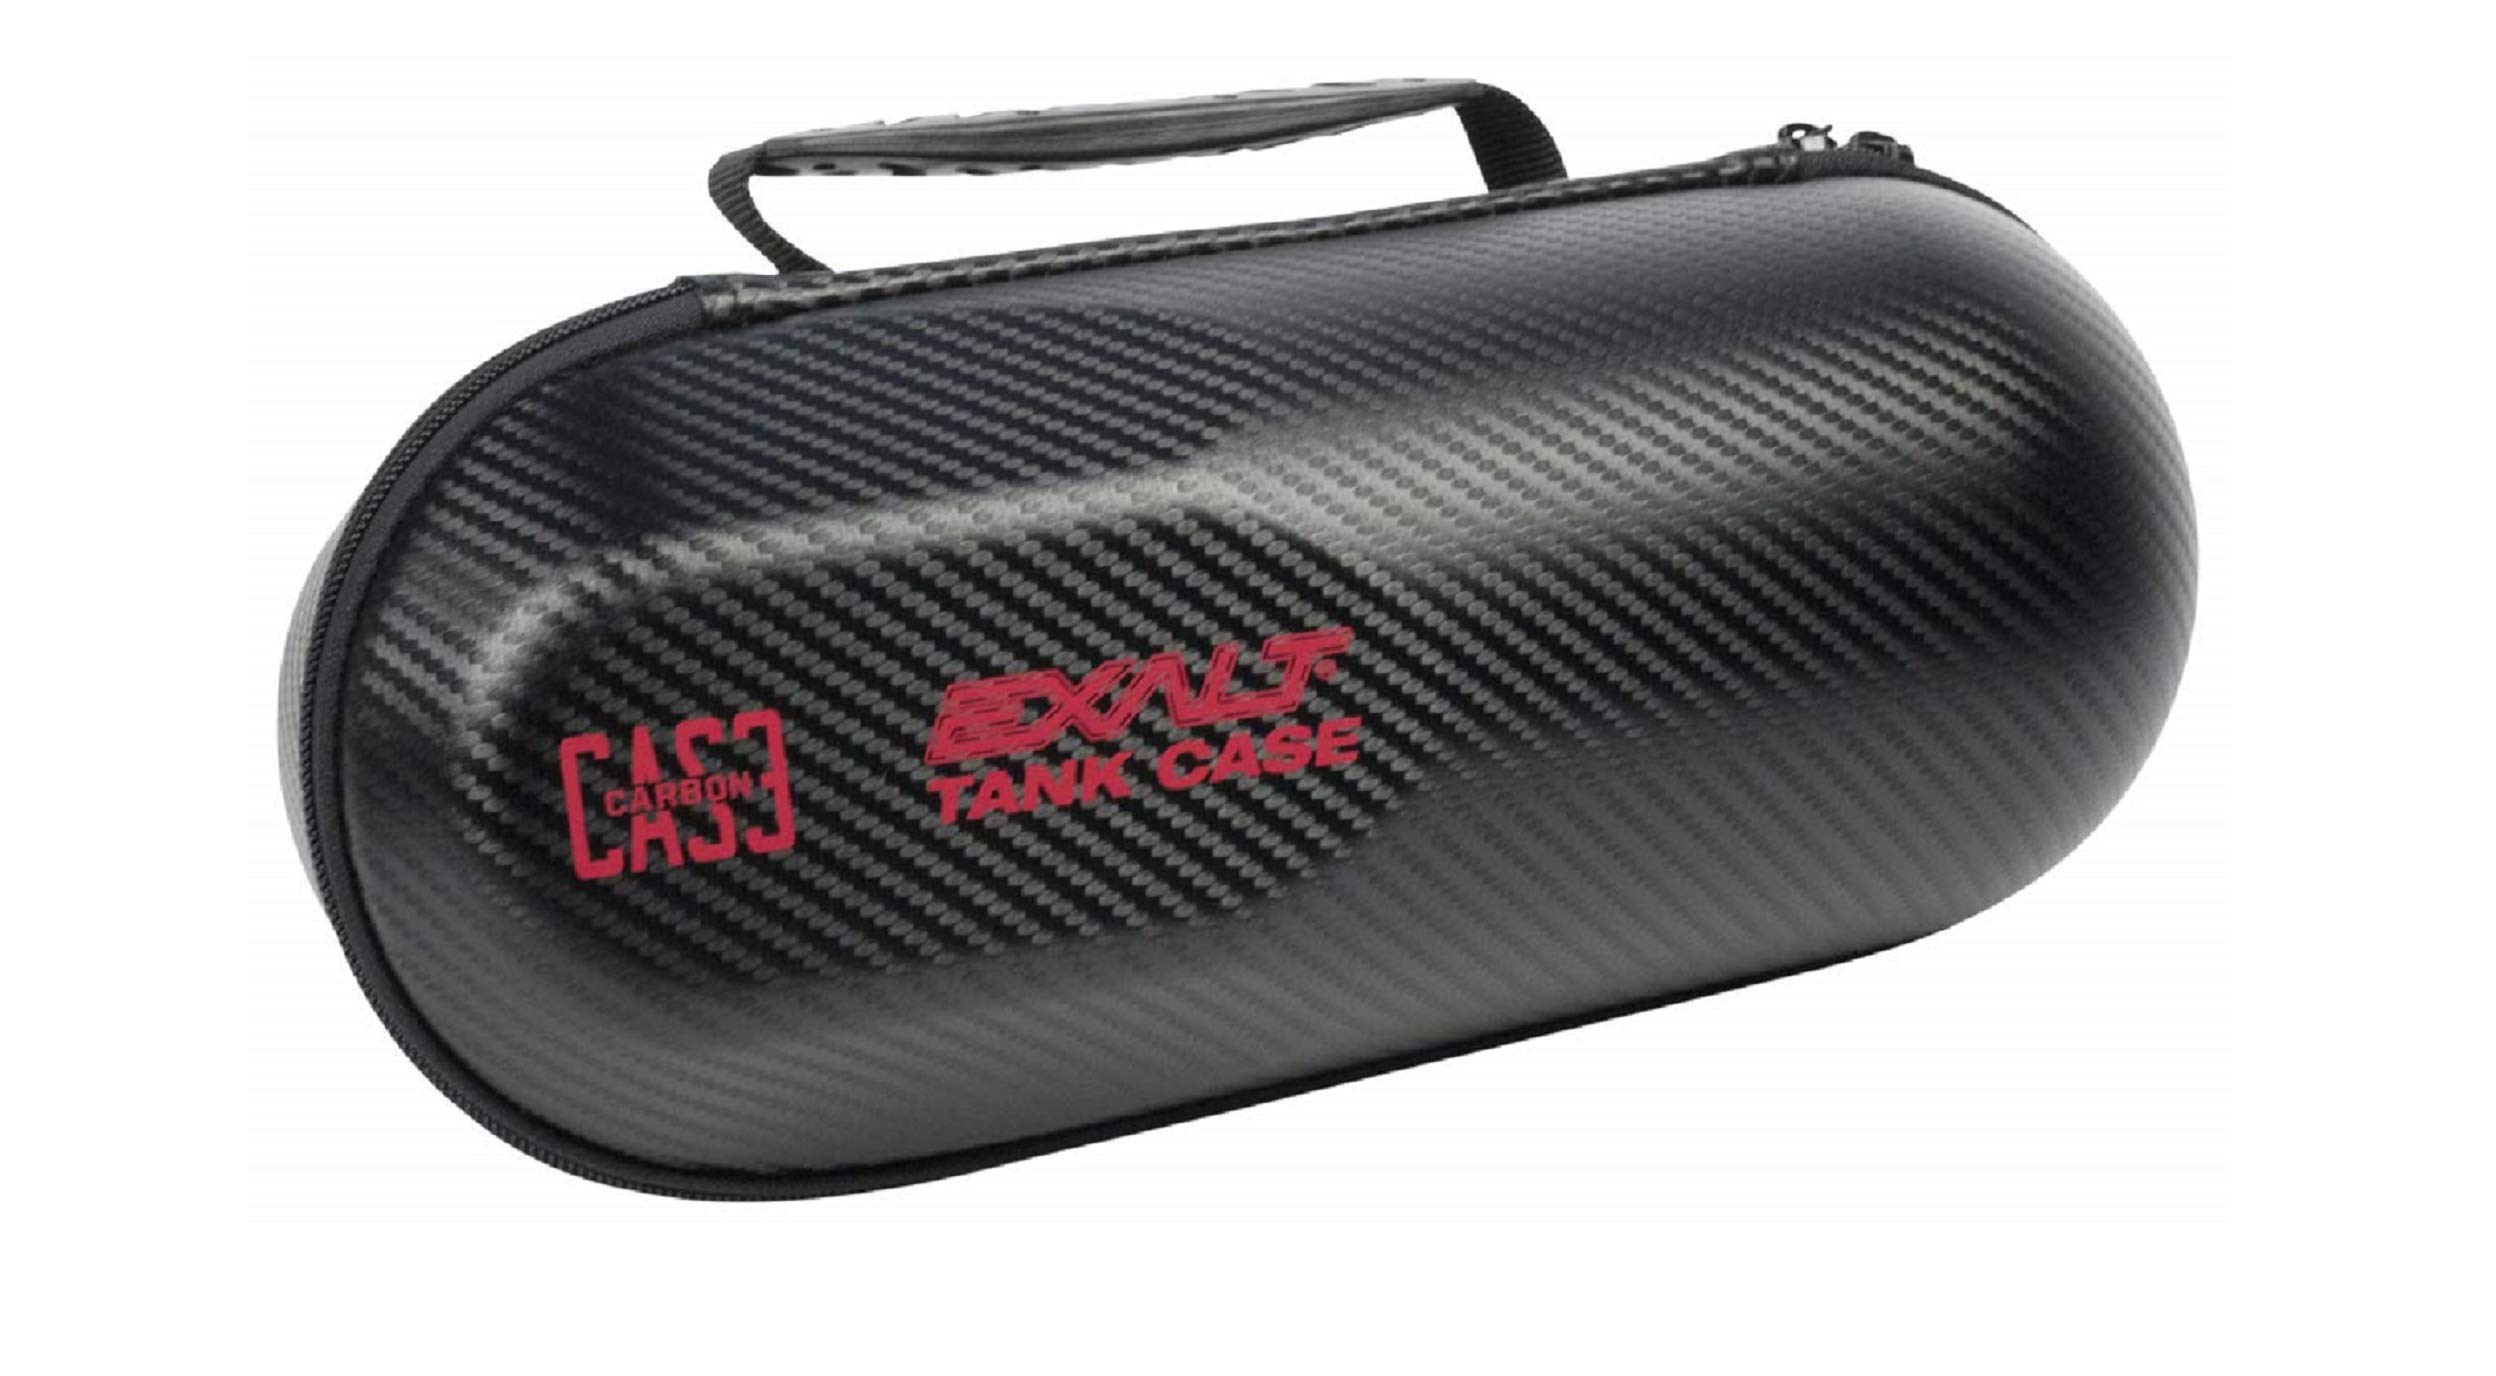 Exalt Paintball Carbon Series Tank Case (Black - Red) by Exalt